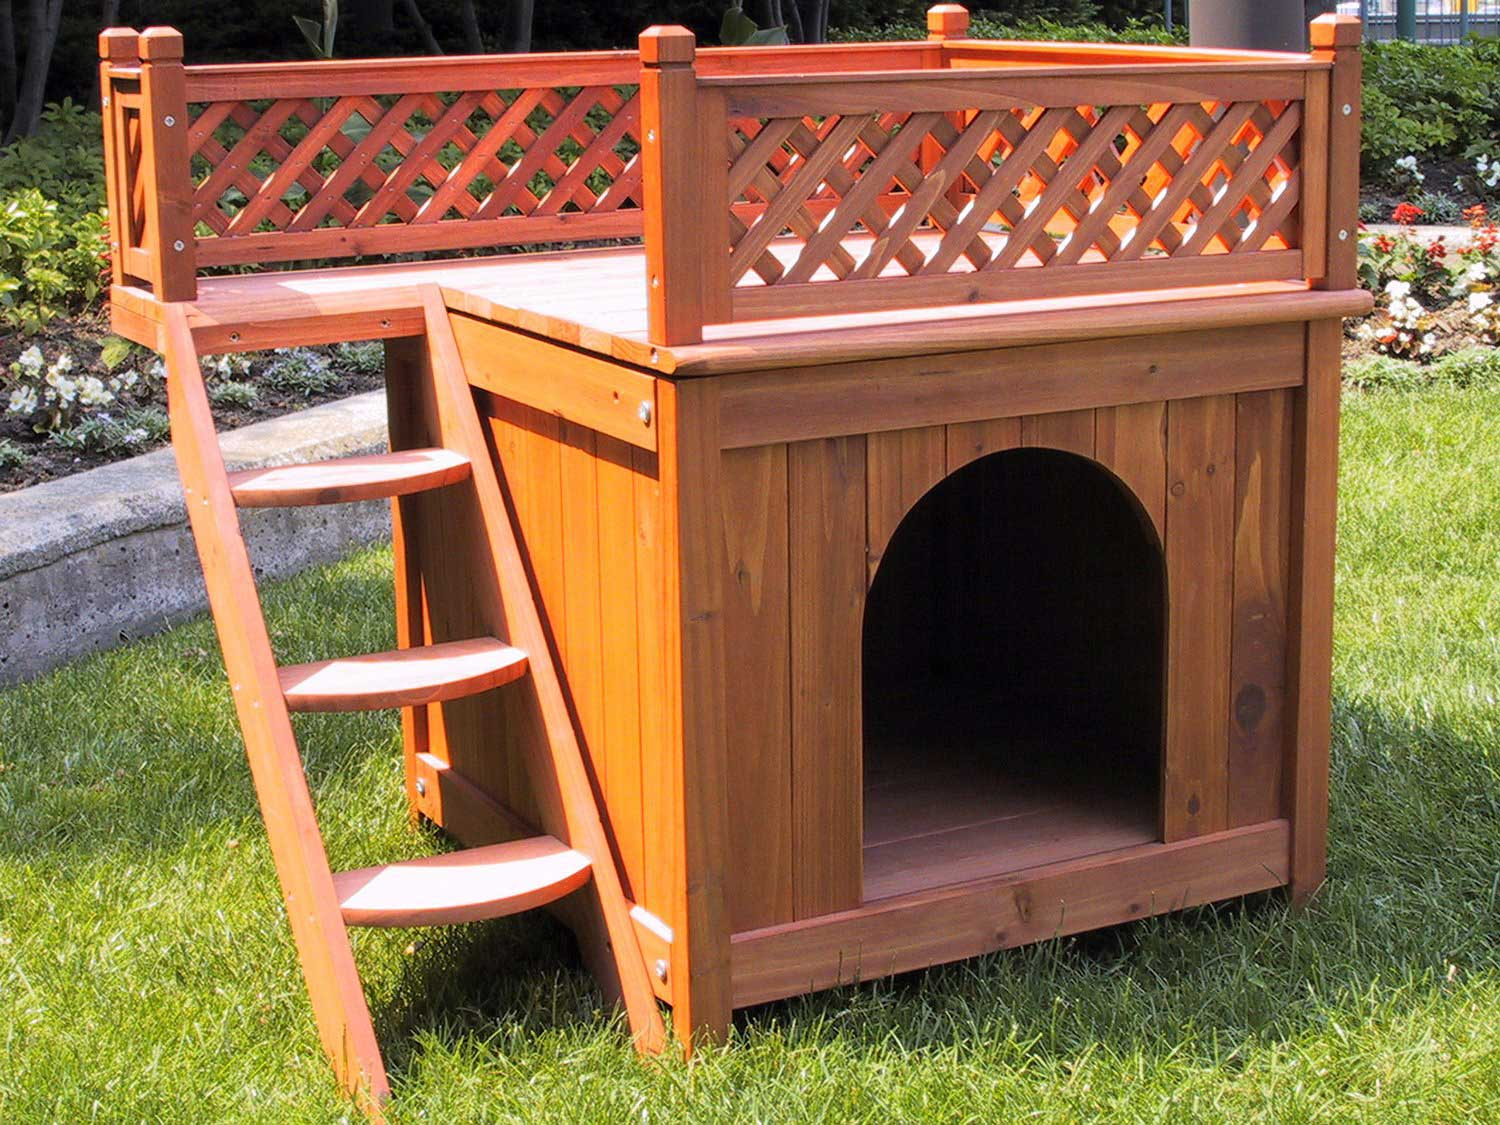 Indoor dog houses - The Most Adorable Dog Houses Ever Some Of Them You Can Buy Online Adorable Home